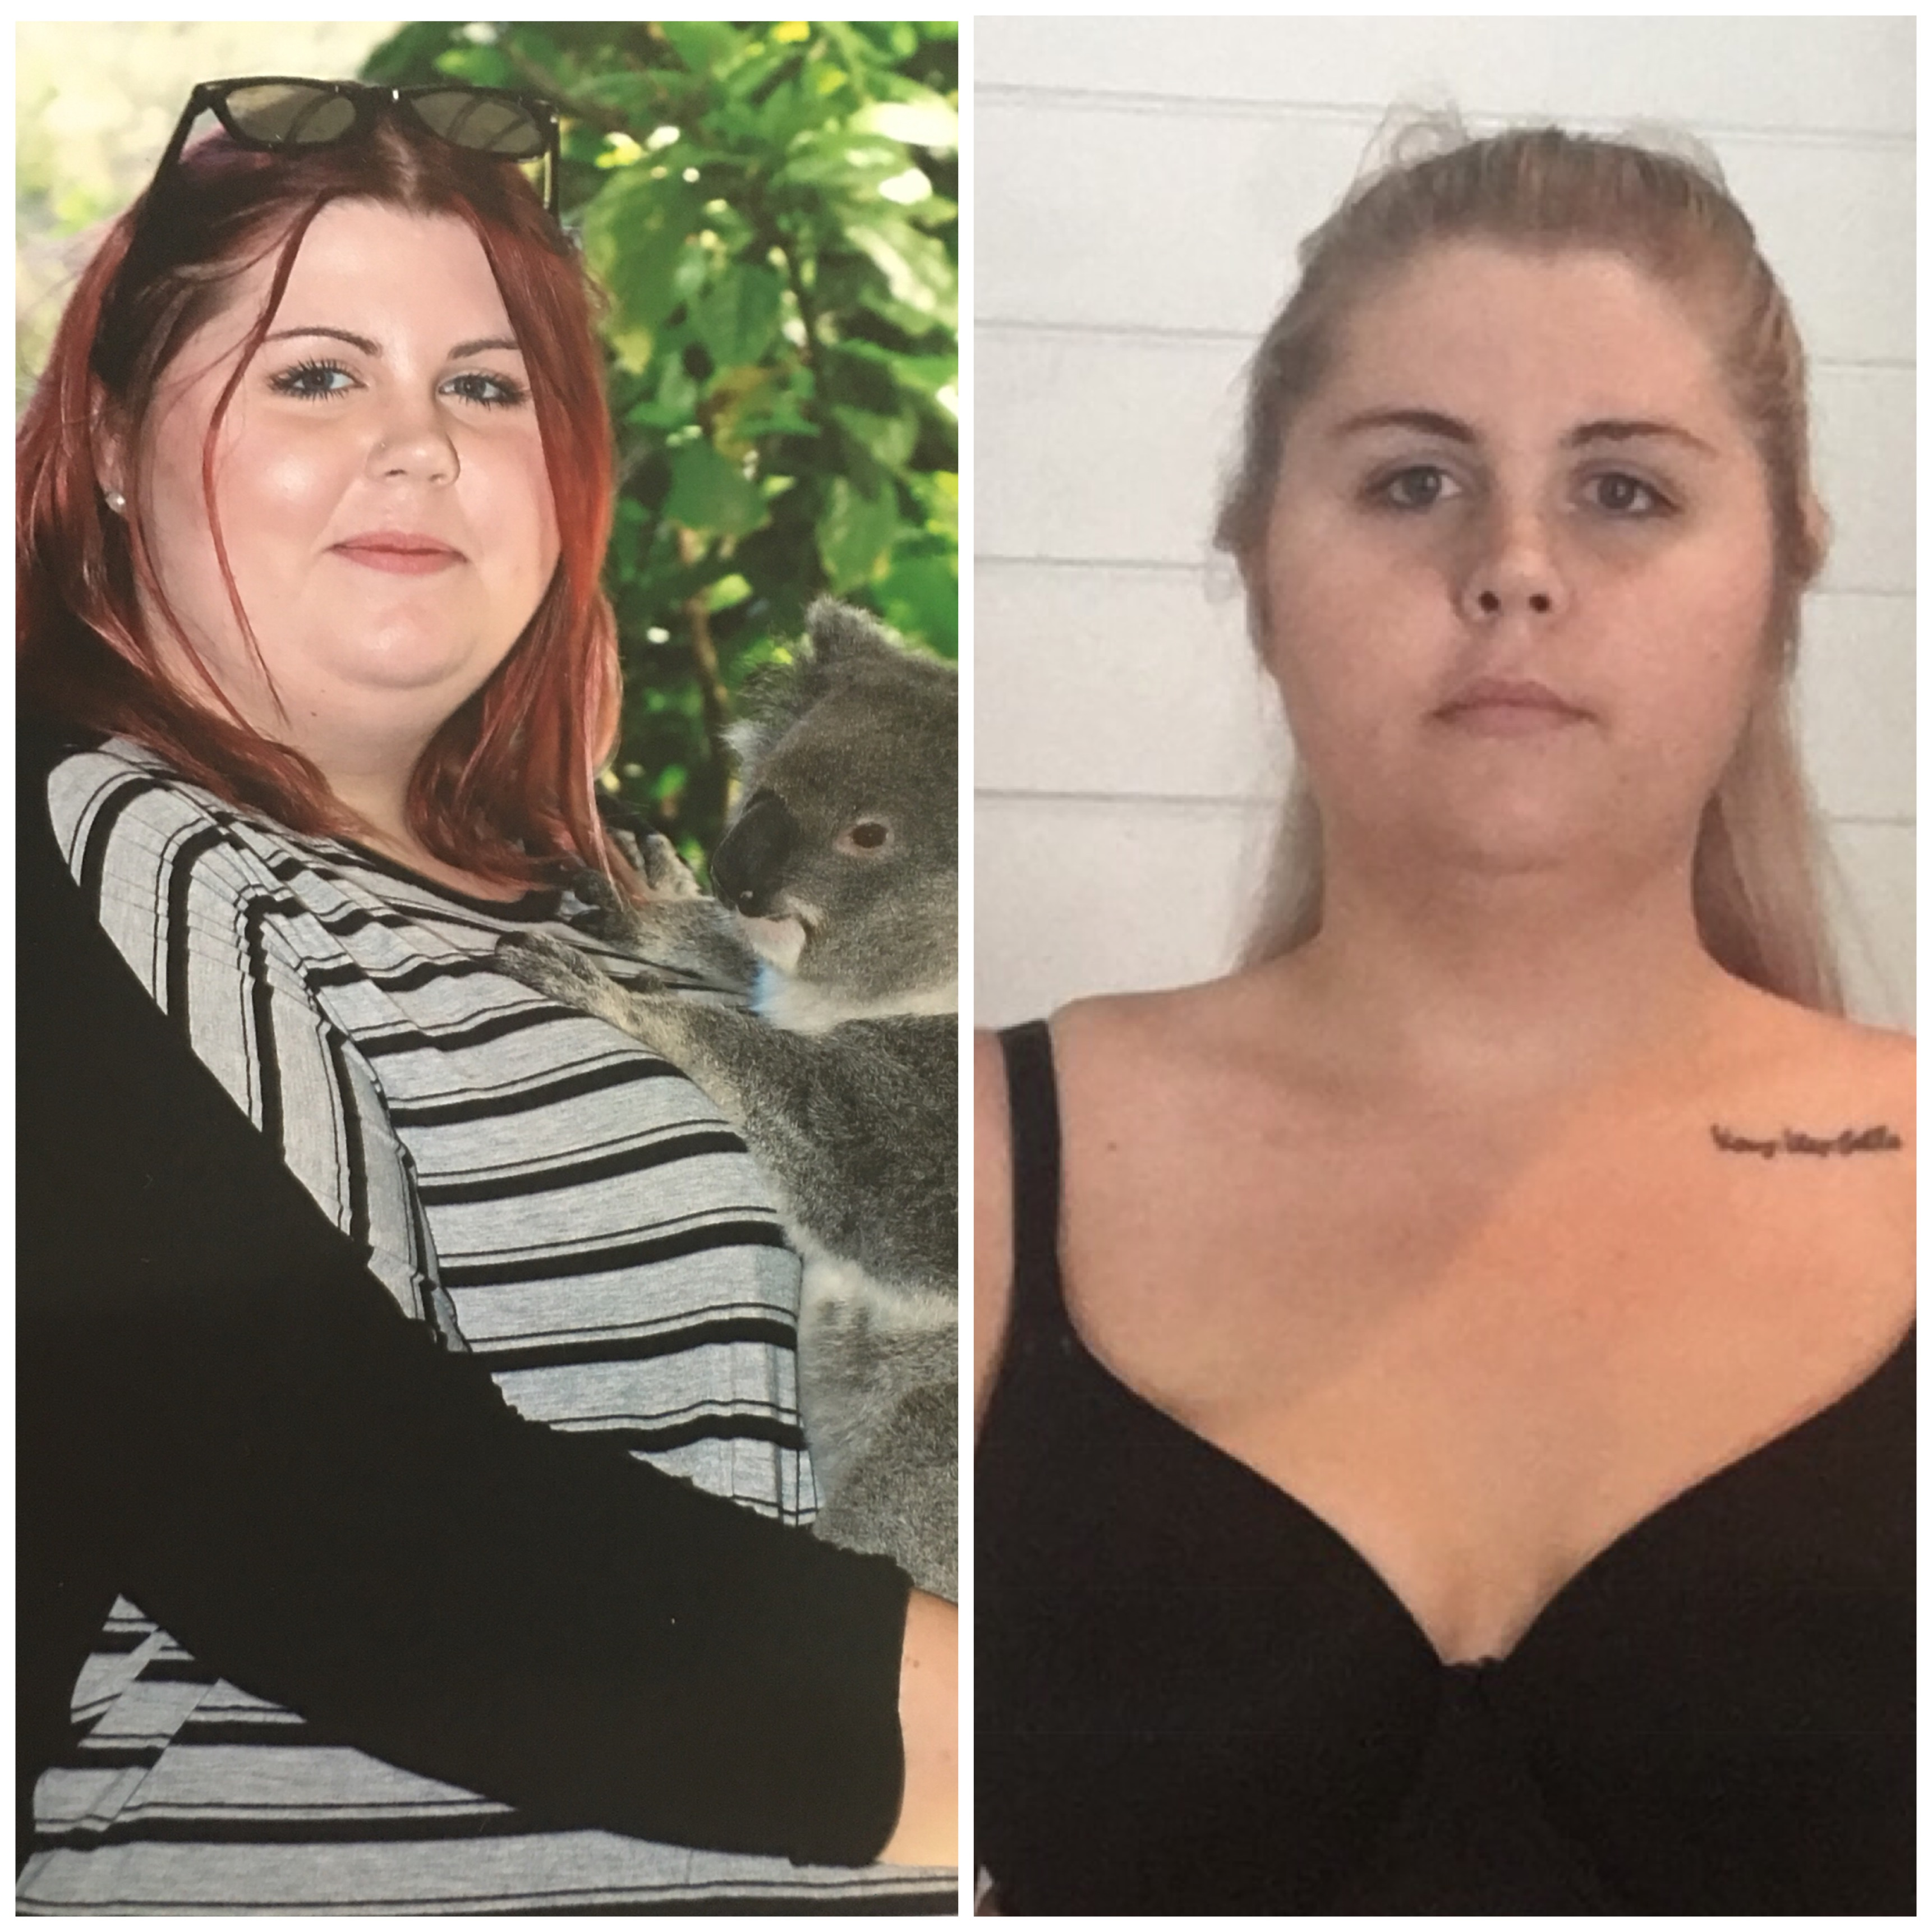 Weight Loss Surgery Not The Easy Option But Worth It Says Patient